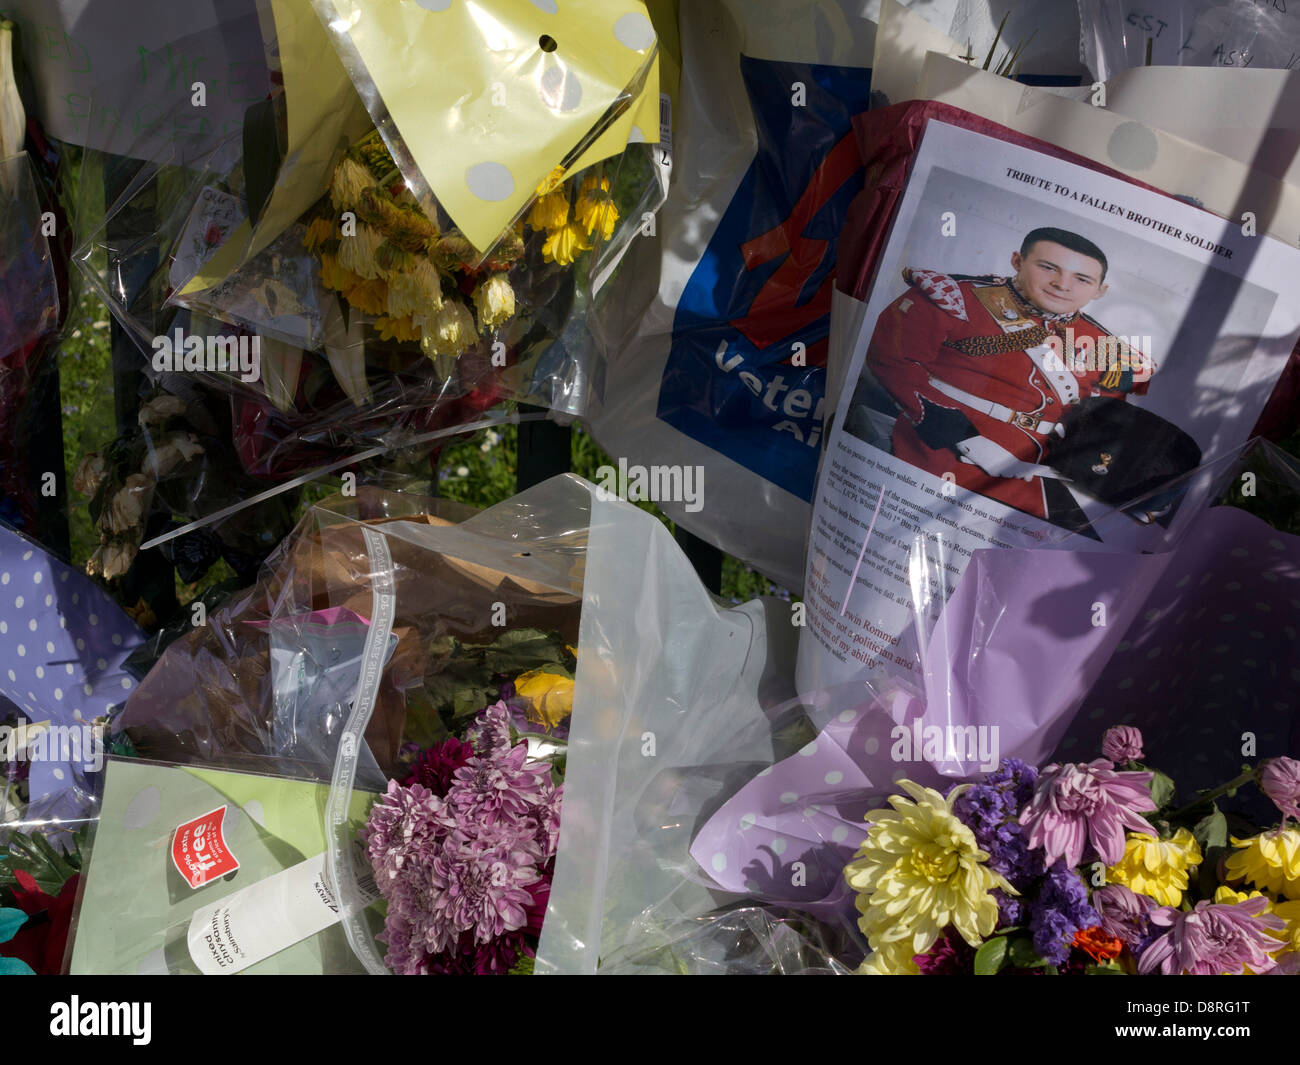 Floral tributes to Drummer Lee Rigby, killed outside Woolwich Barracks in London on May 22  - Stock Image